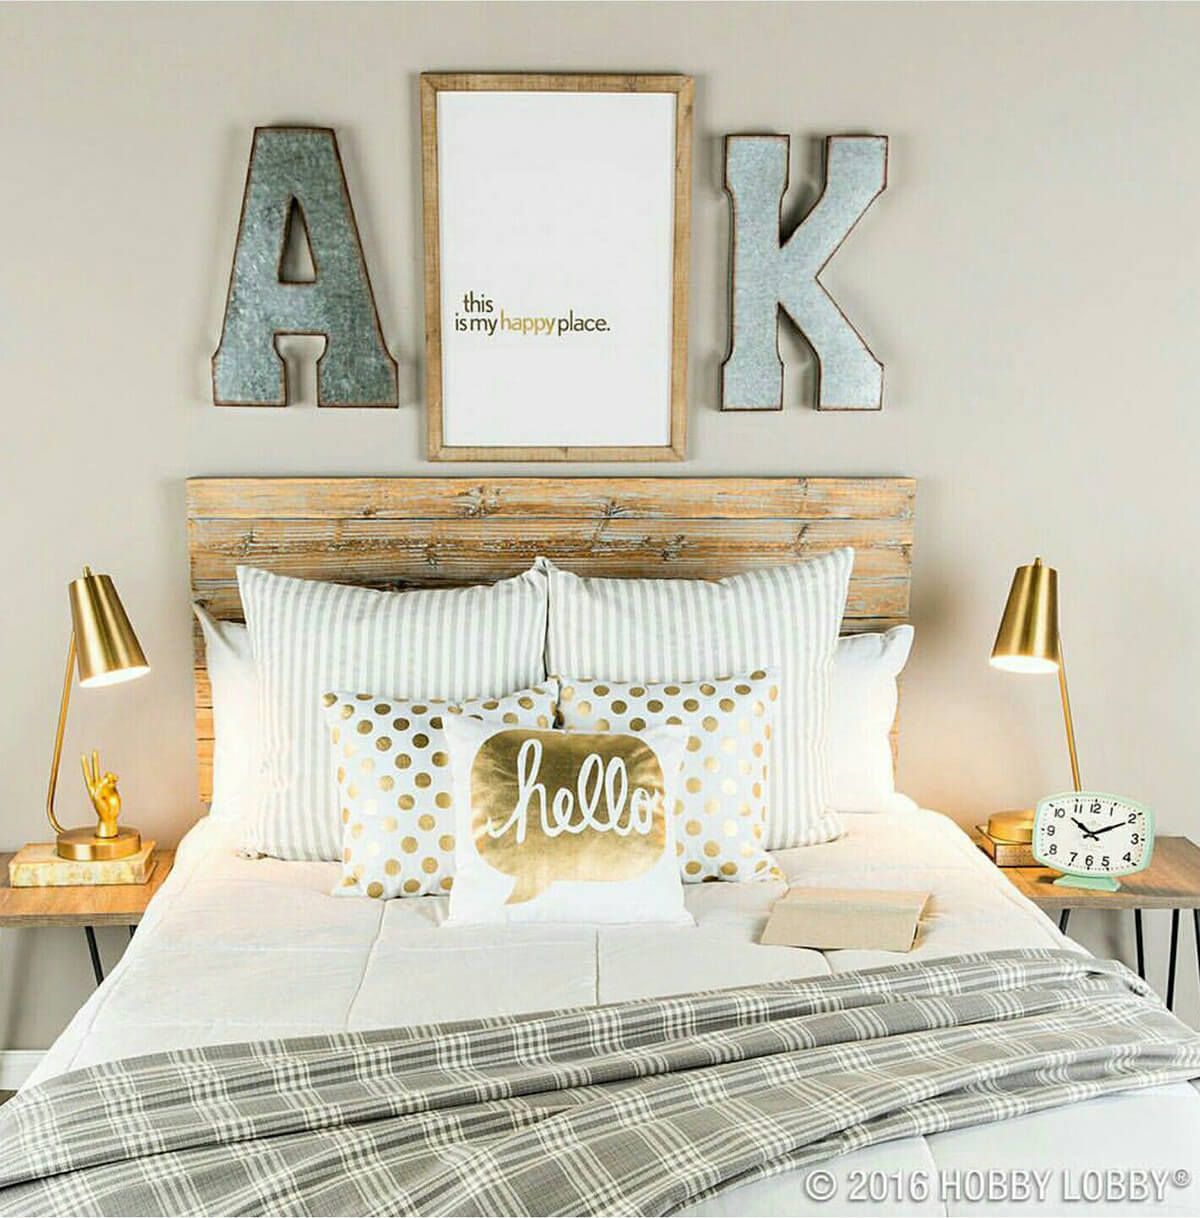 25 Wall Decoration Ideas For Your Home: 25+ Best Bedroom Wall Decor Ideas And Designs For 2019